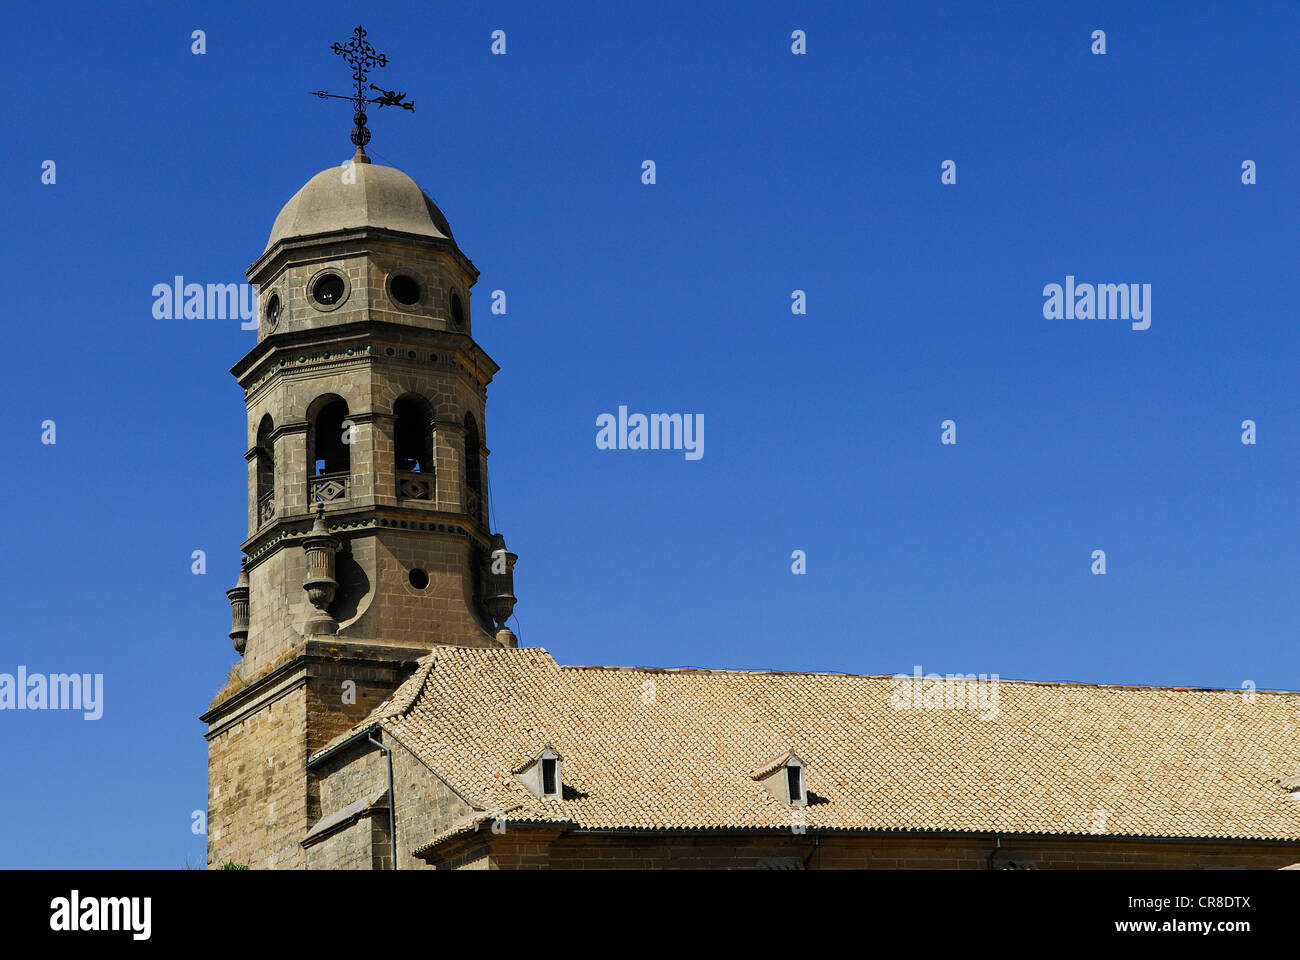 Spain, Andalusia, province of Jaen, Baeza, city UNESCO World Heritage, the bell tower of the cathedral - Stock Image